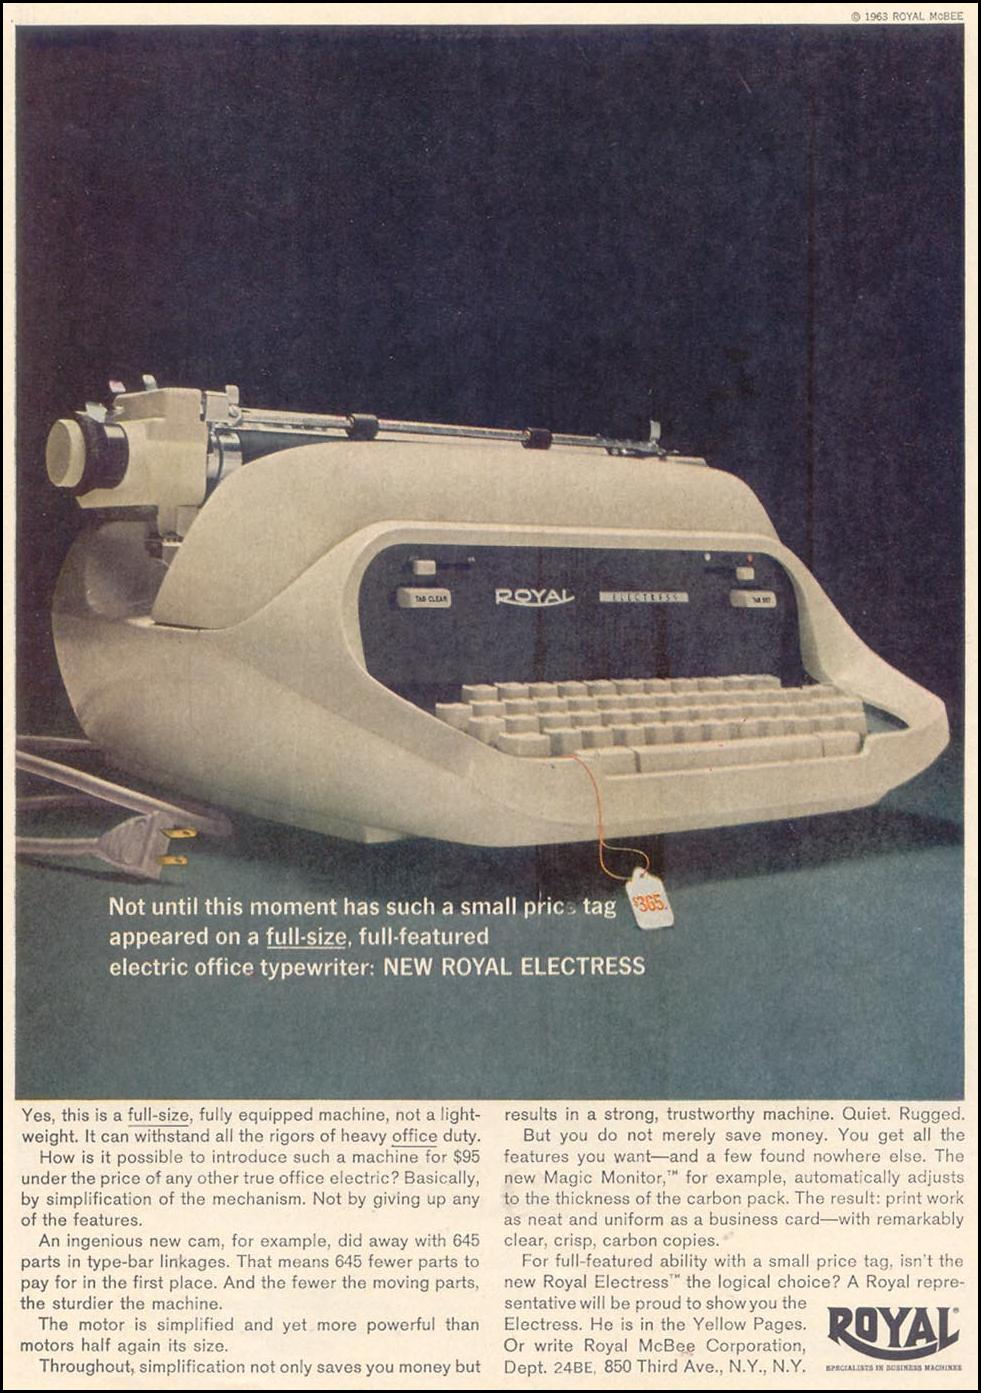 ROYAL ELECTRESS ELECTRIC TYPEWRITER TIME 02/01/1963 p. 54